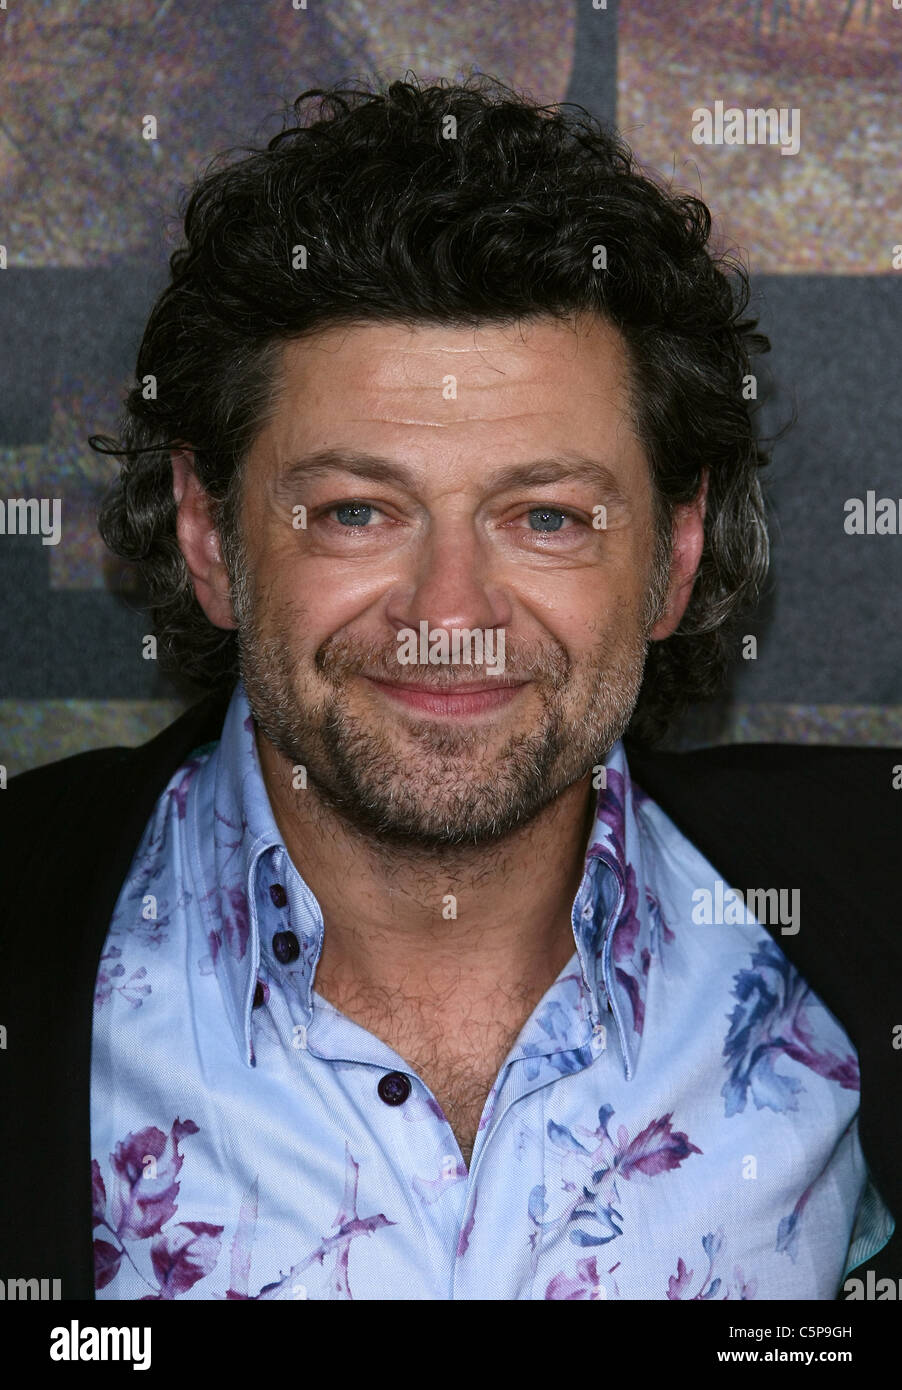 ANDY SERKIS RISE OF THE PLANET OF THE APES. LOS ANGELES PREMIERE HOLLYWOOD LOS ANGELES CALIFORNIA USA 28 July 2011 - Stock Image